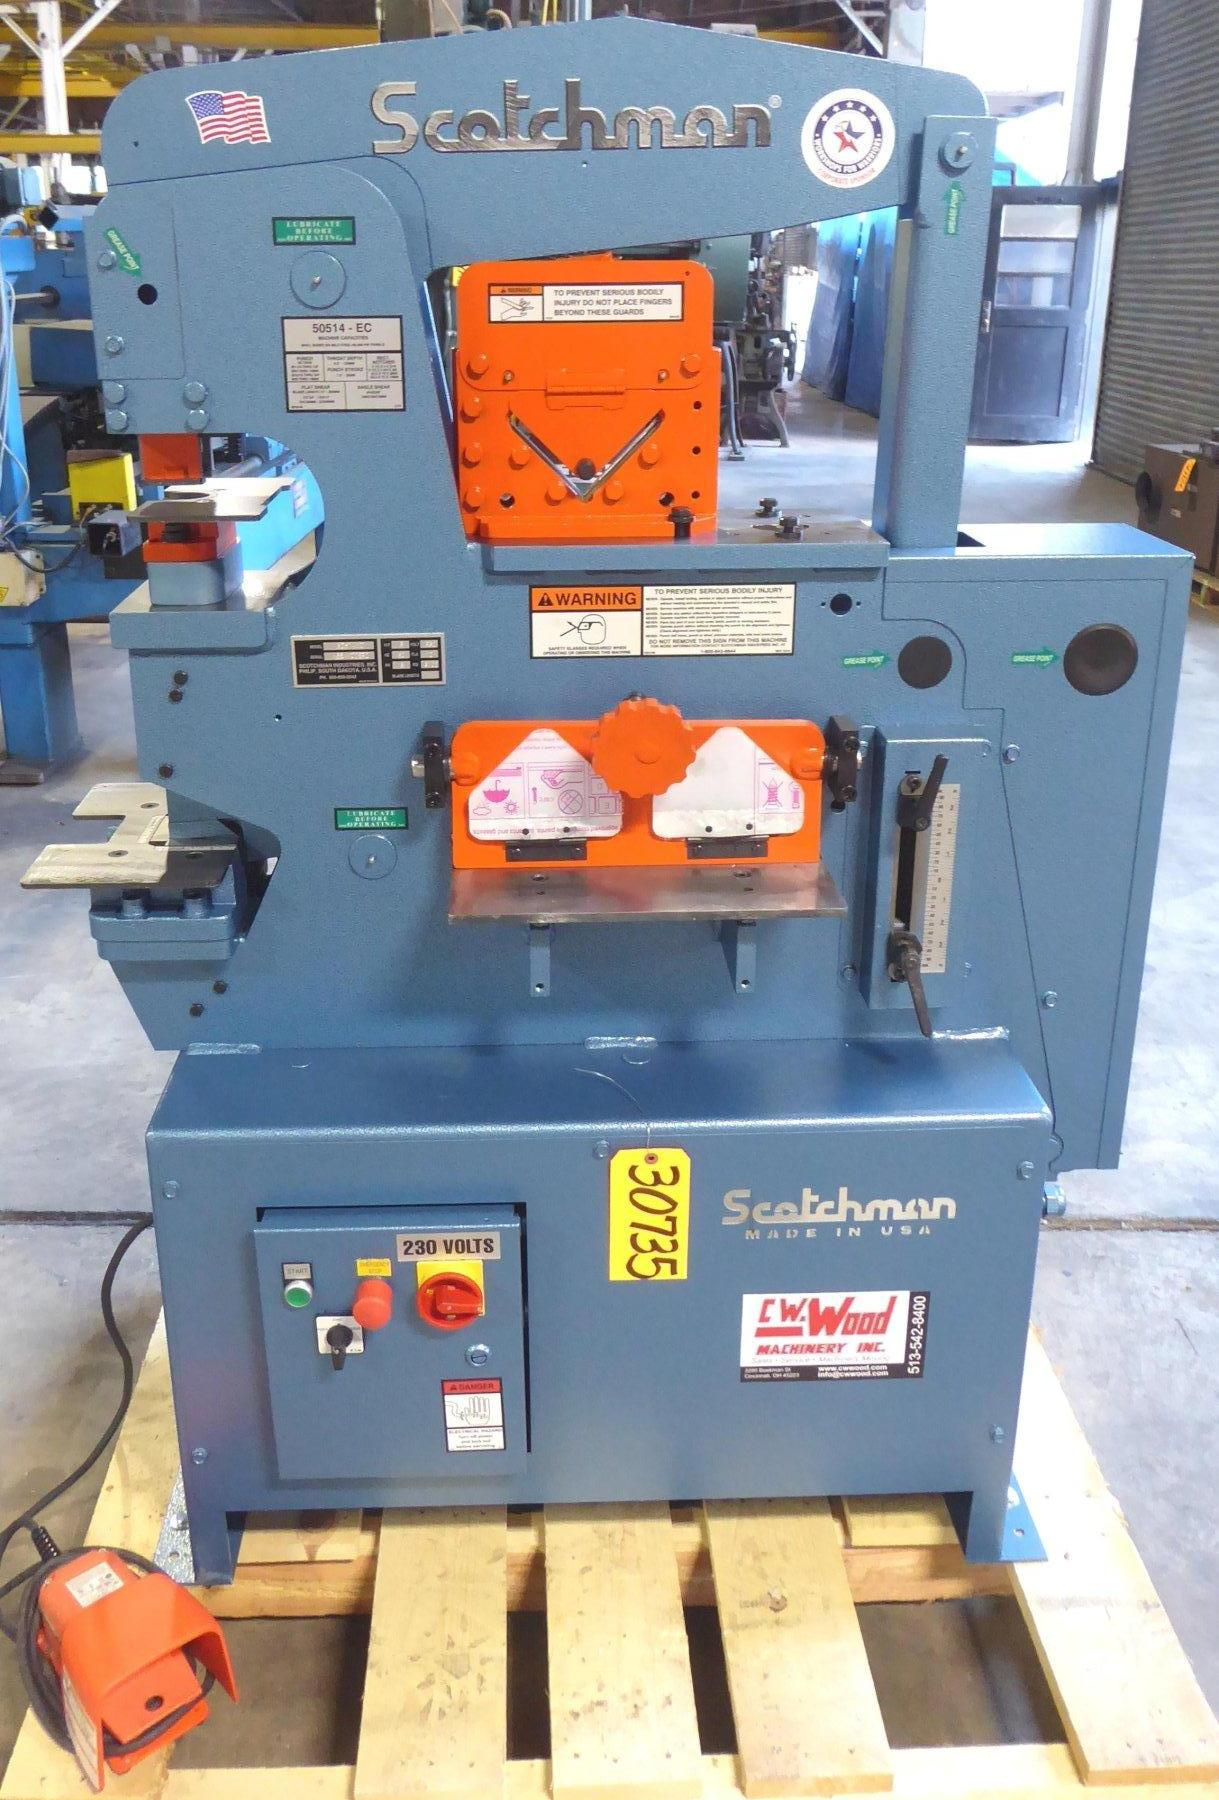 4″ x 4″ x 3/8″ SCOTCHMAN Hydraulic Ironworker, No. 50514-EC, 50 Ton, Punch, Bar Shear, Notcher, New, In Stock